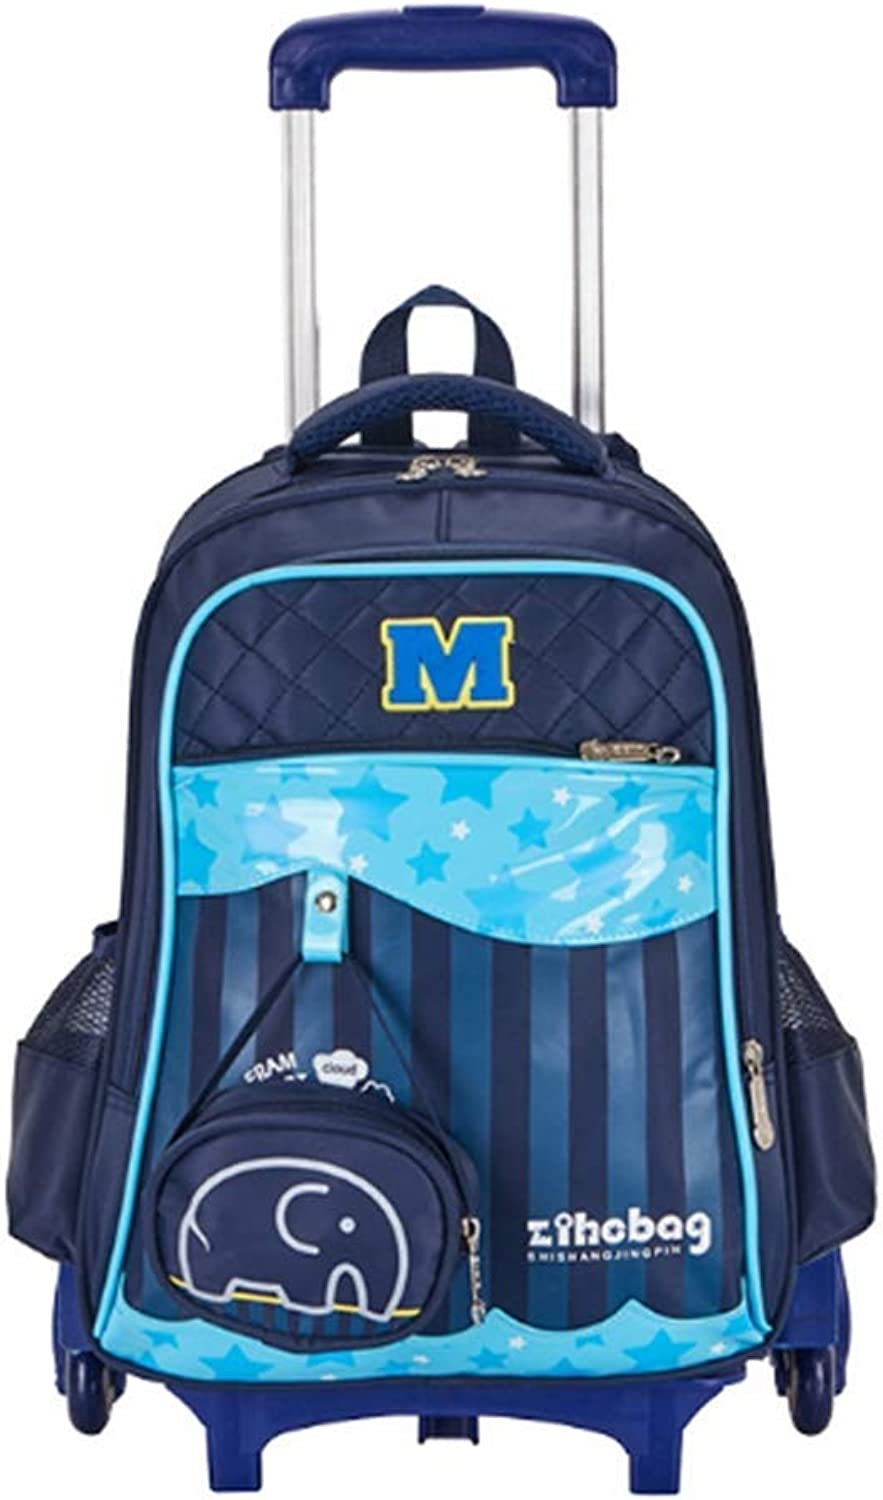 HIMFL Students Trolley School Bag Girl and Boy Rolling Backpack Six Wheels Climbing Stairs Removable Double Shoulder Bag Recommended Grade  16